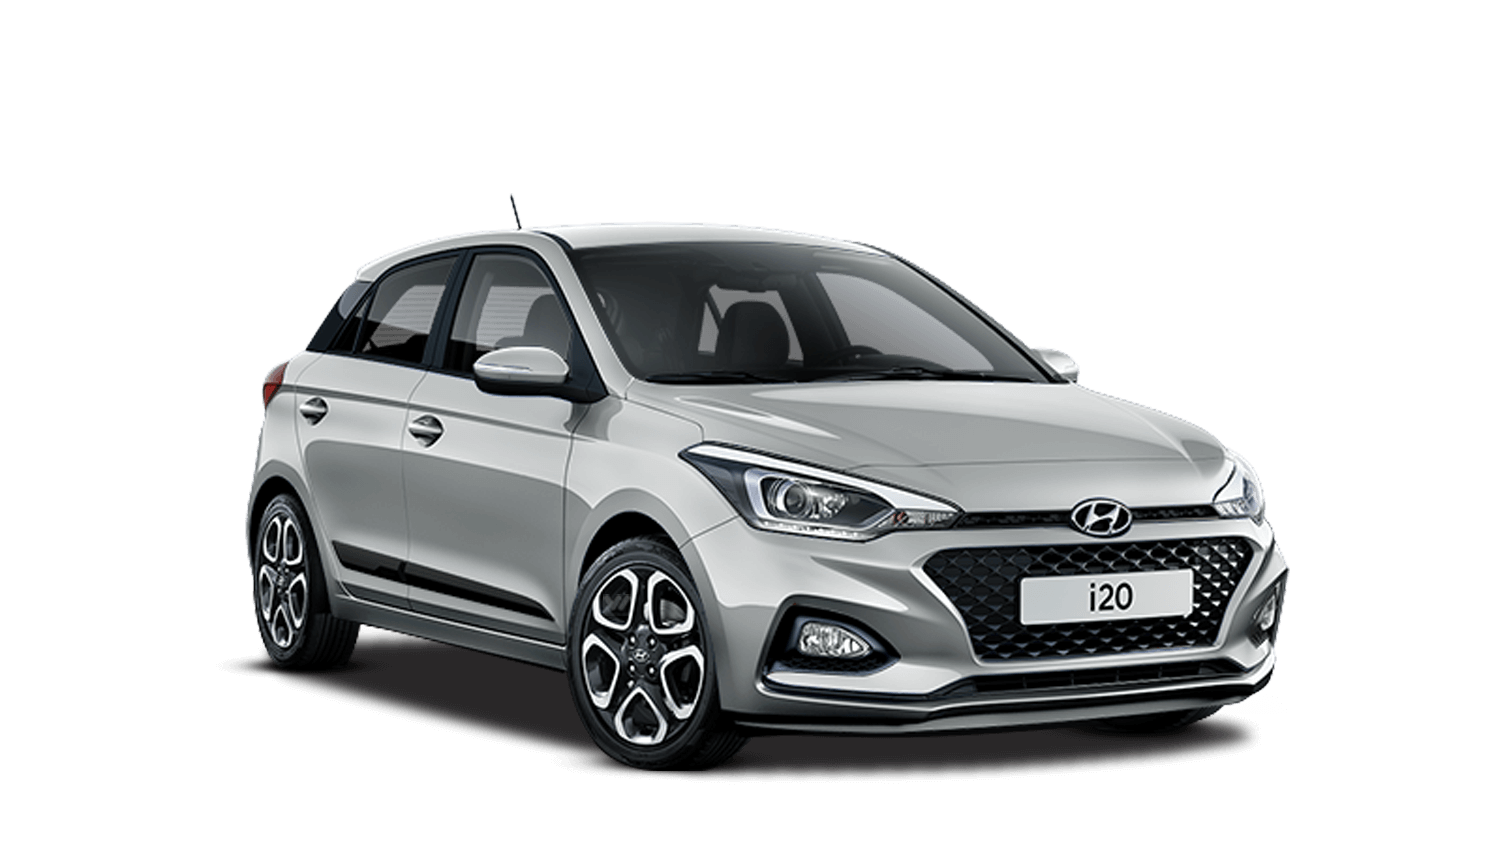 Sleek Silver Hyundai I20